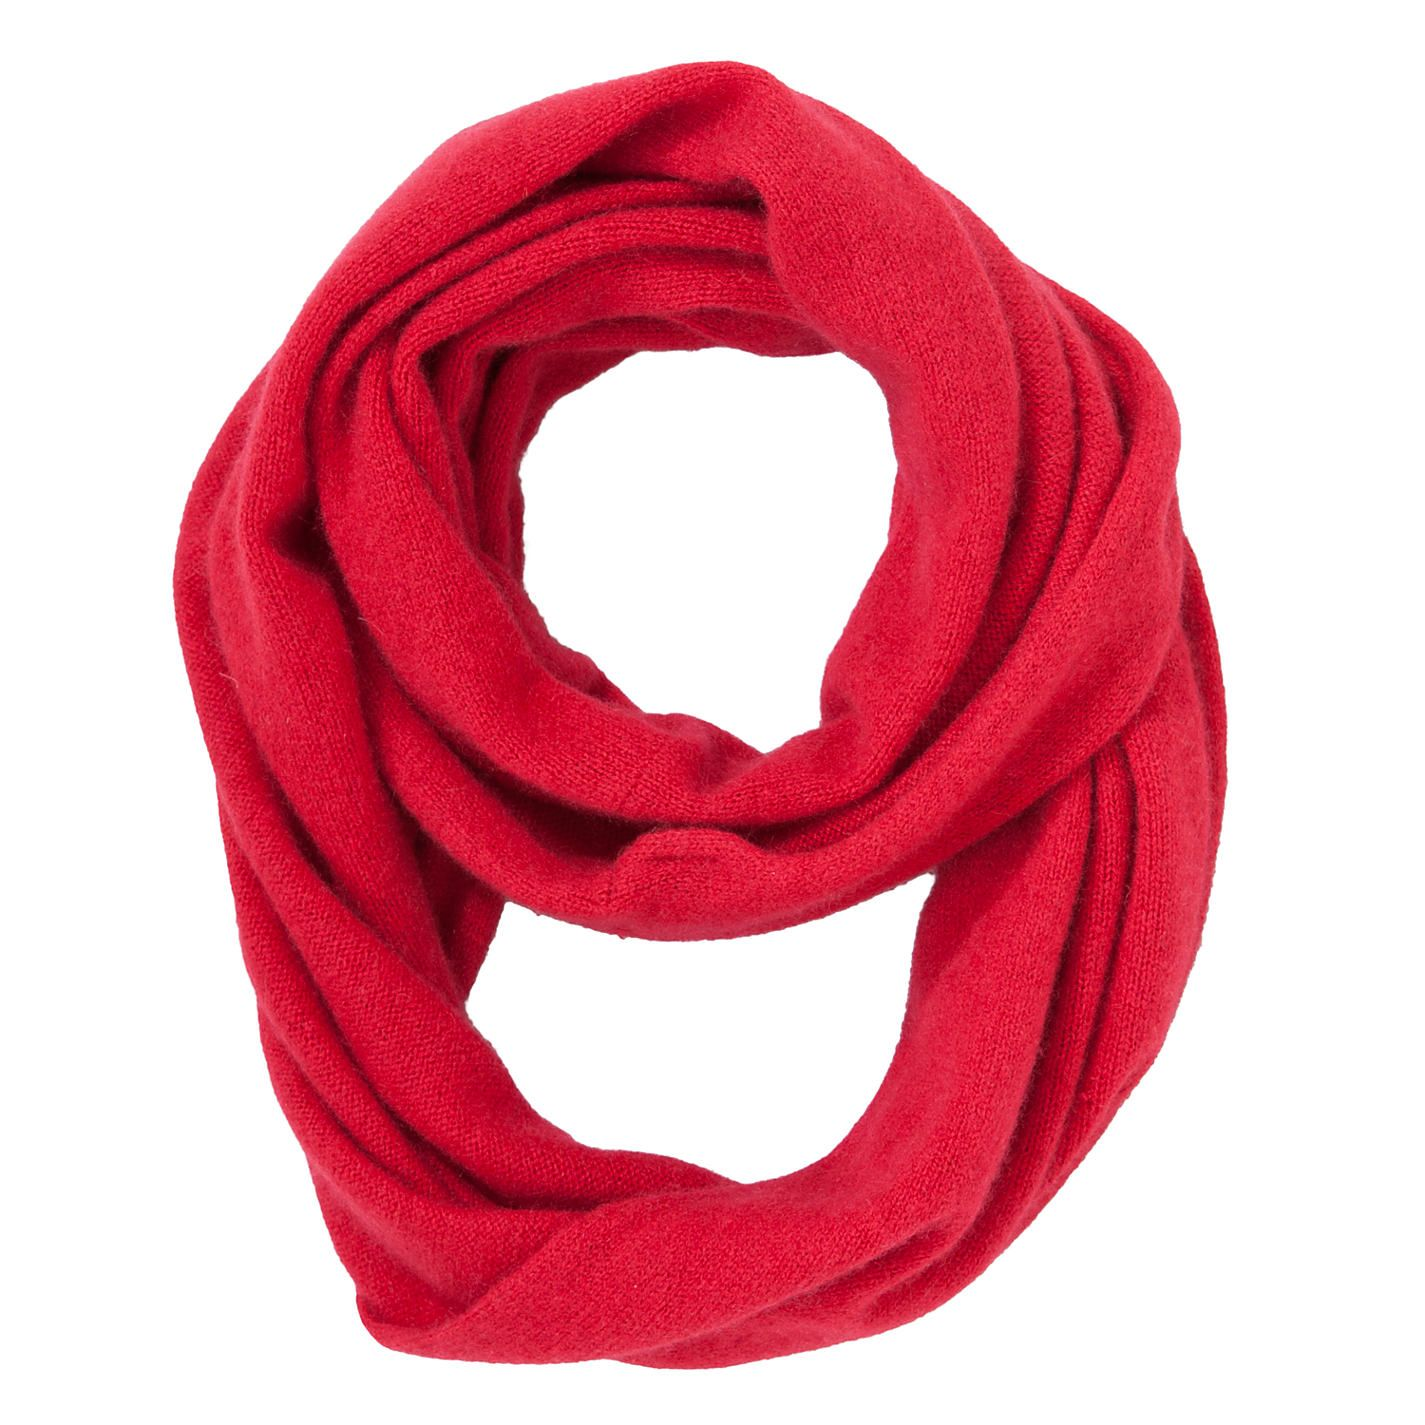 A Red Snood From John Lewis Torn Between This And The Claret One John Lewis Cashmere John Lewis Lewis